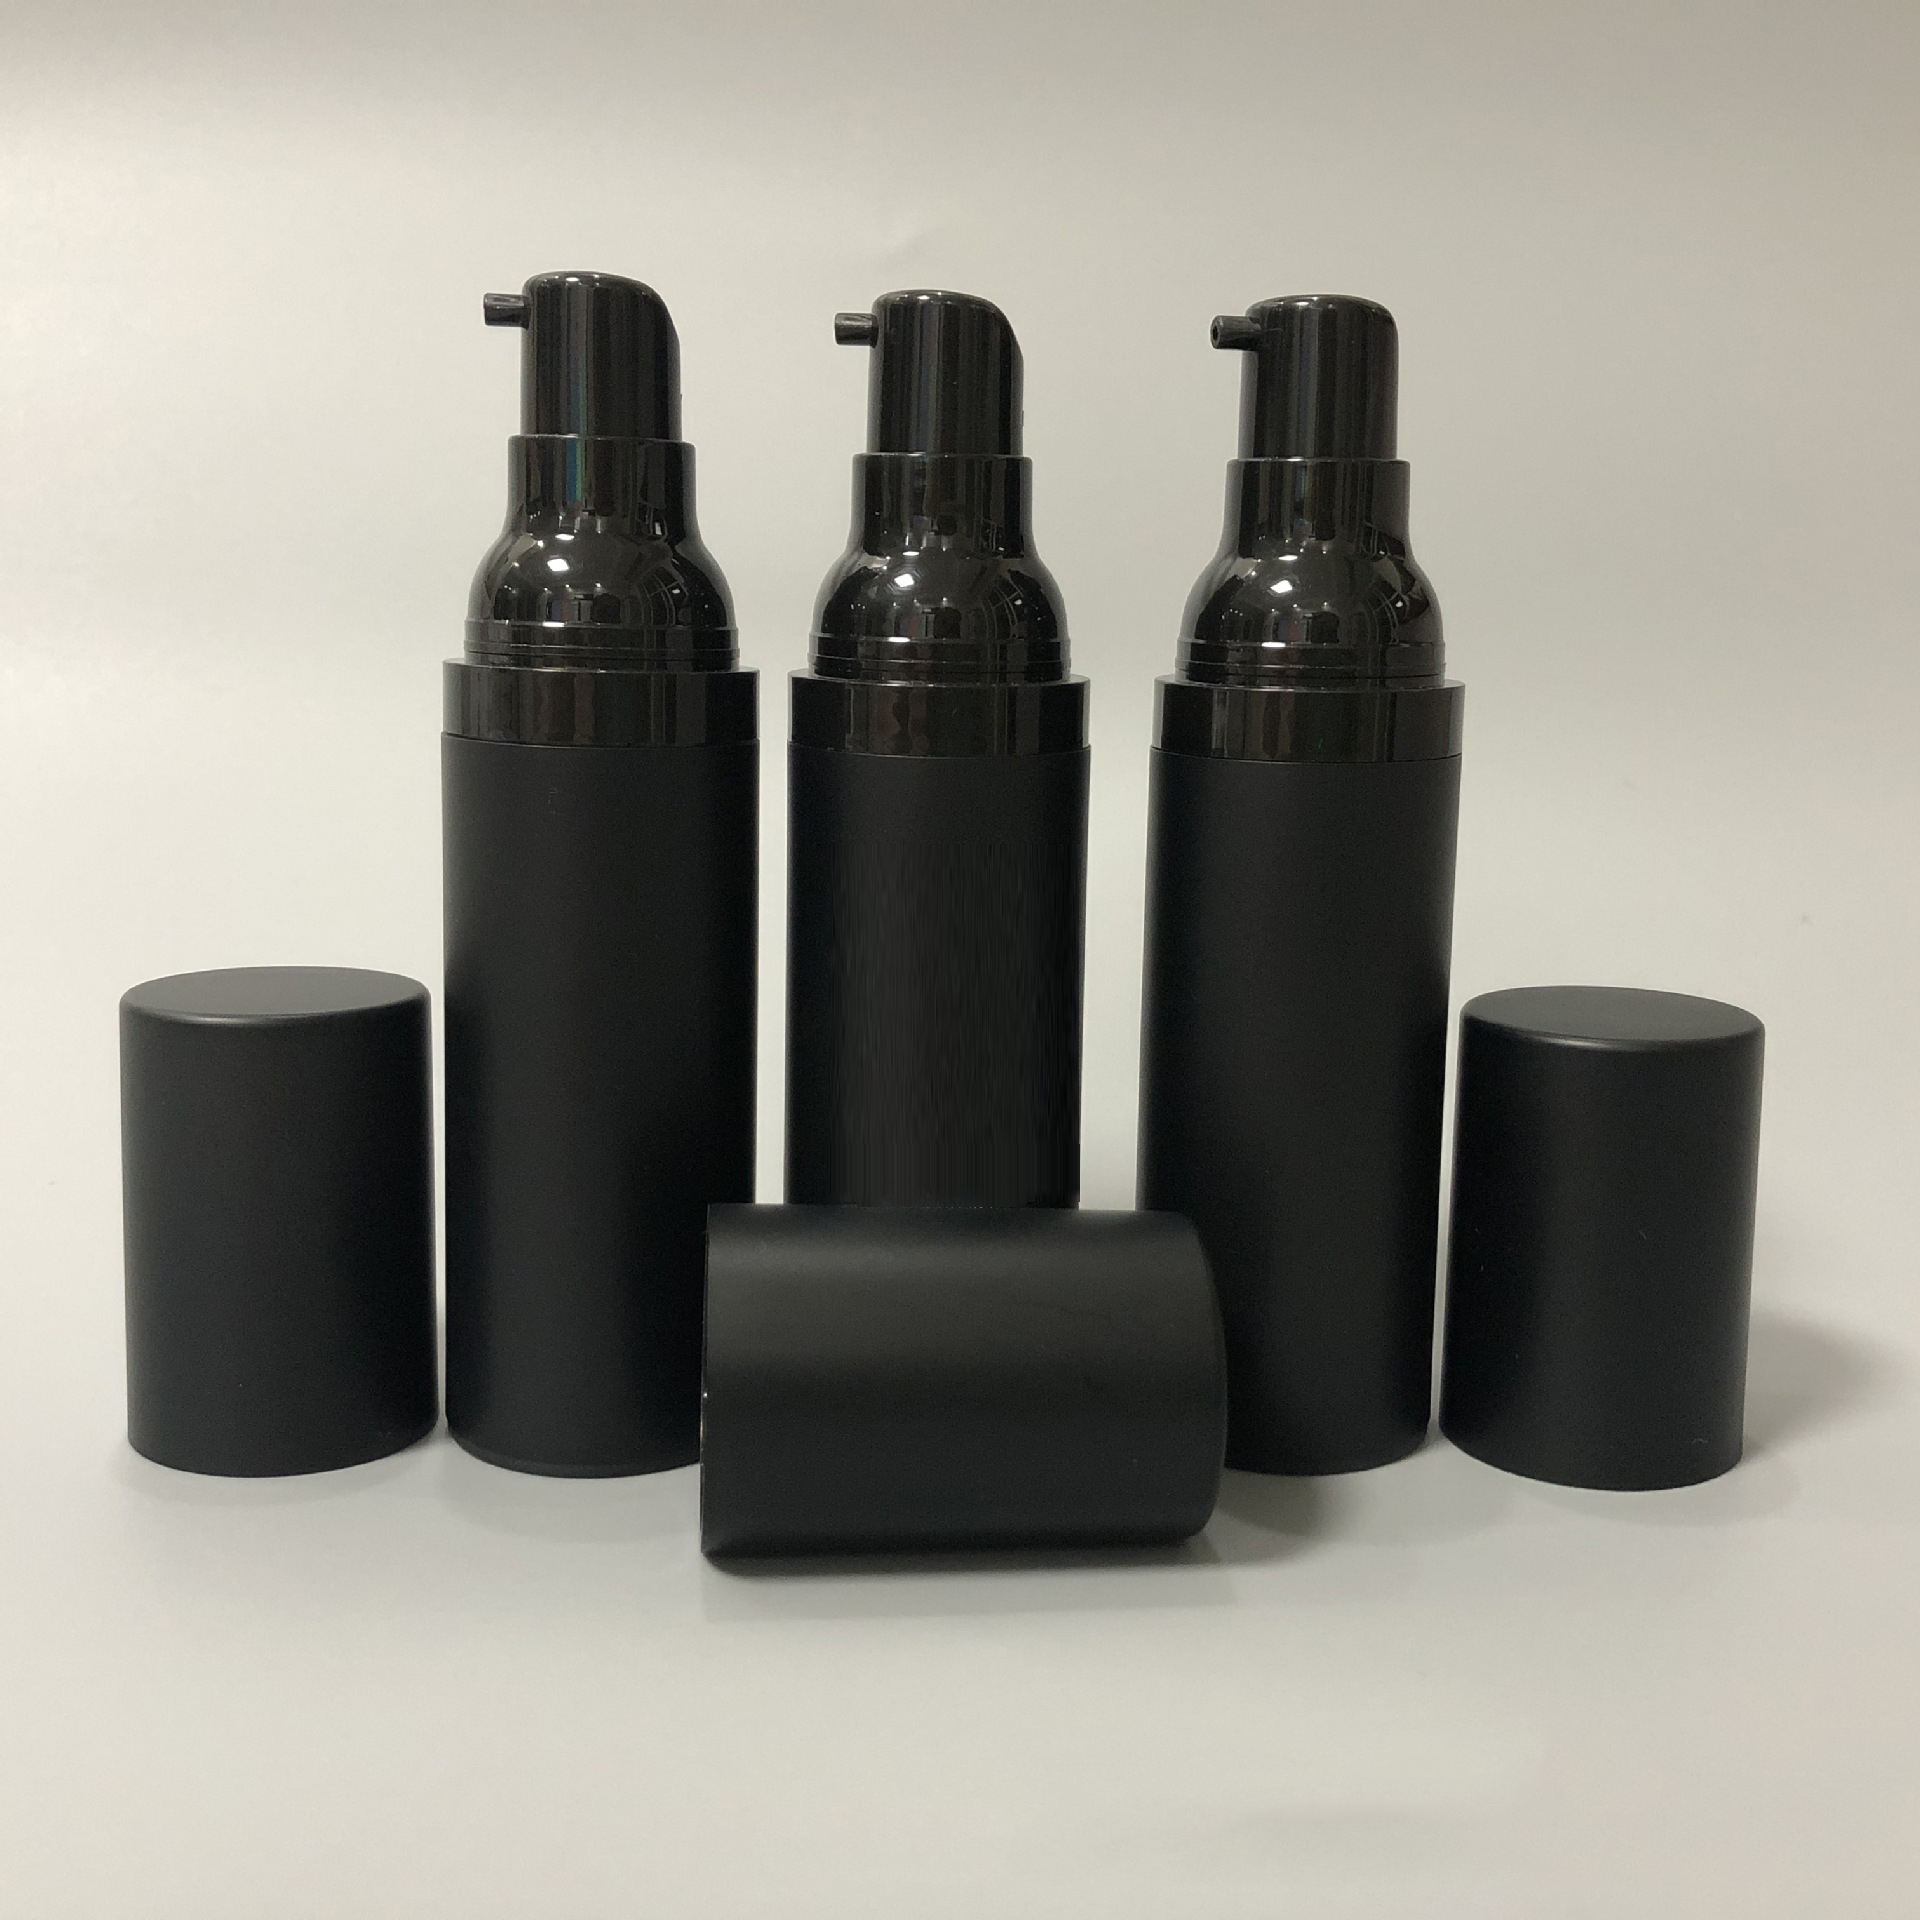 15ml 30ml 50ml black sand vacuum bottle top grade emulsion essence divided into bottles goteros de vidrio emballage cosmetic